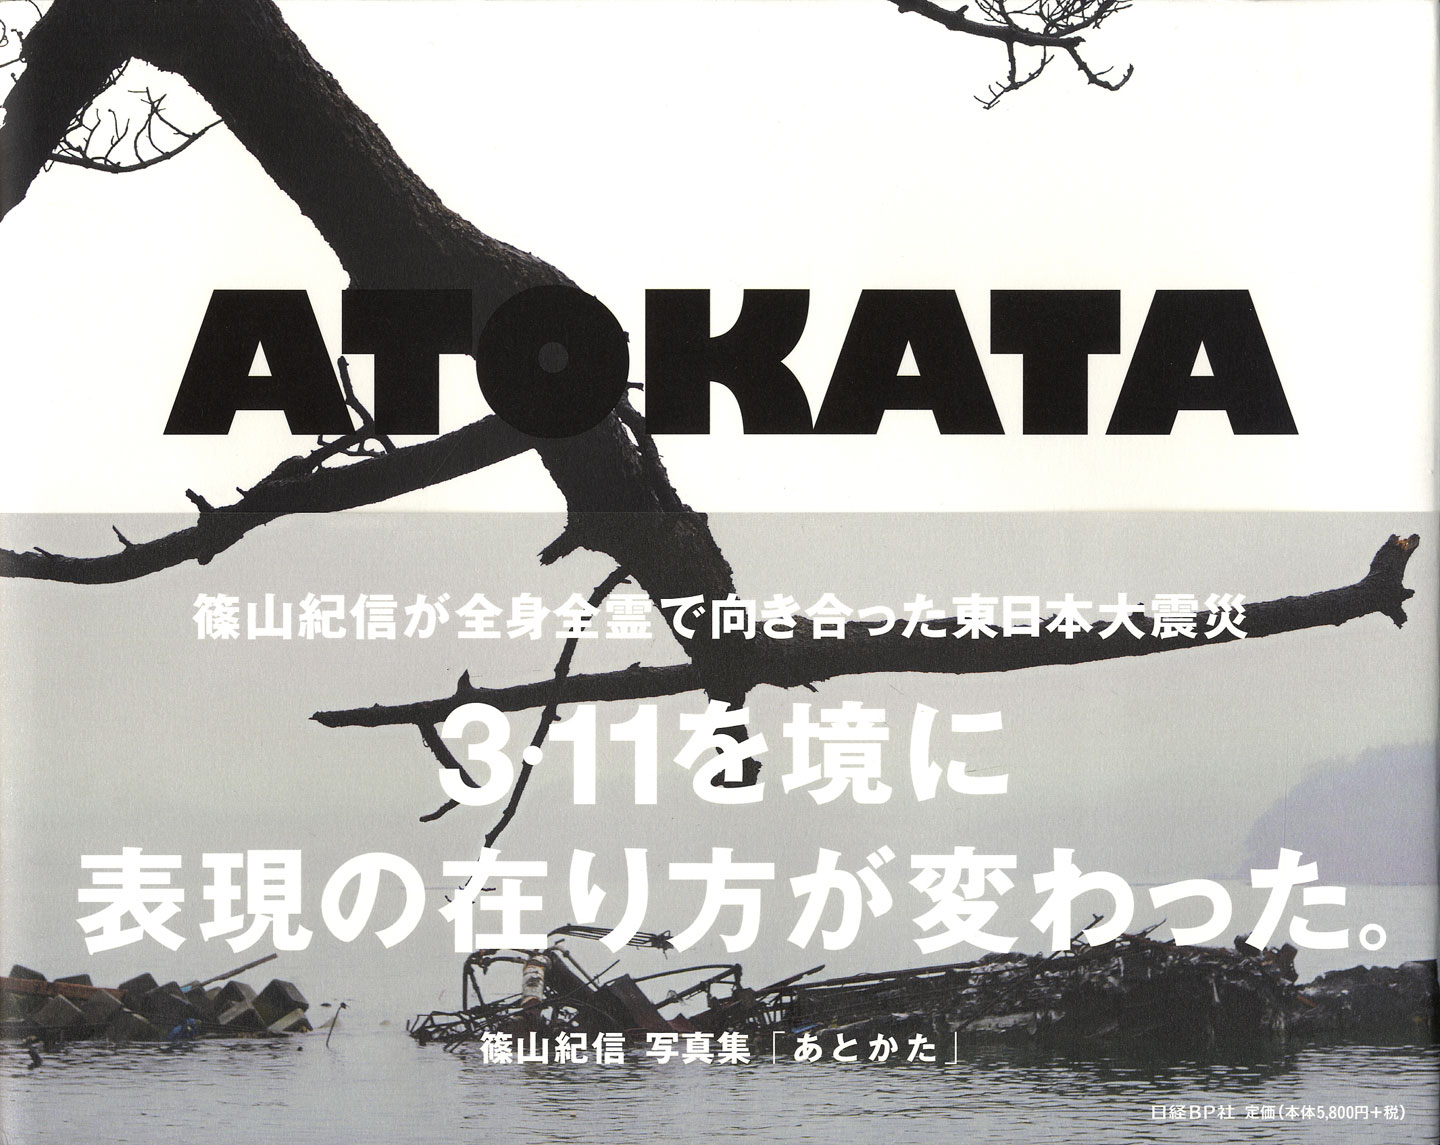 Kishin Shinoyama: Atokata (What Is Left There)